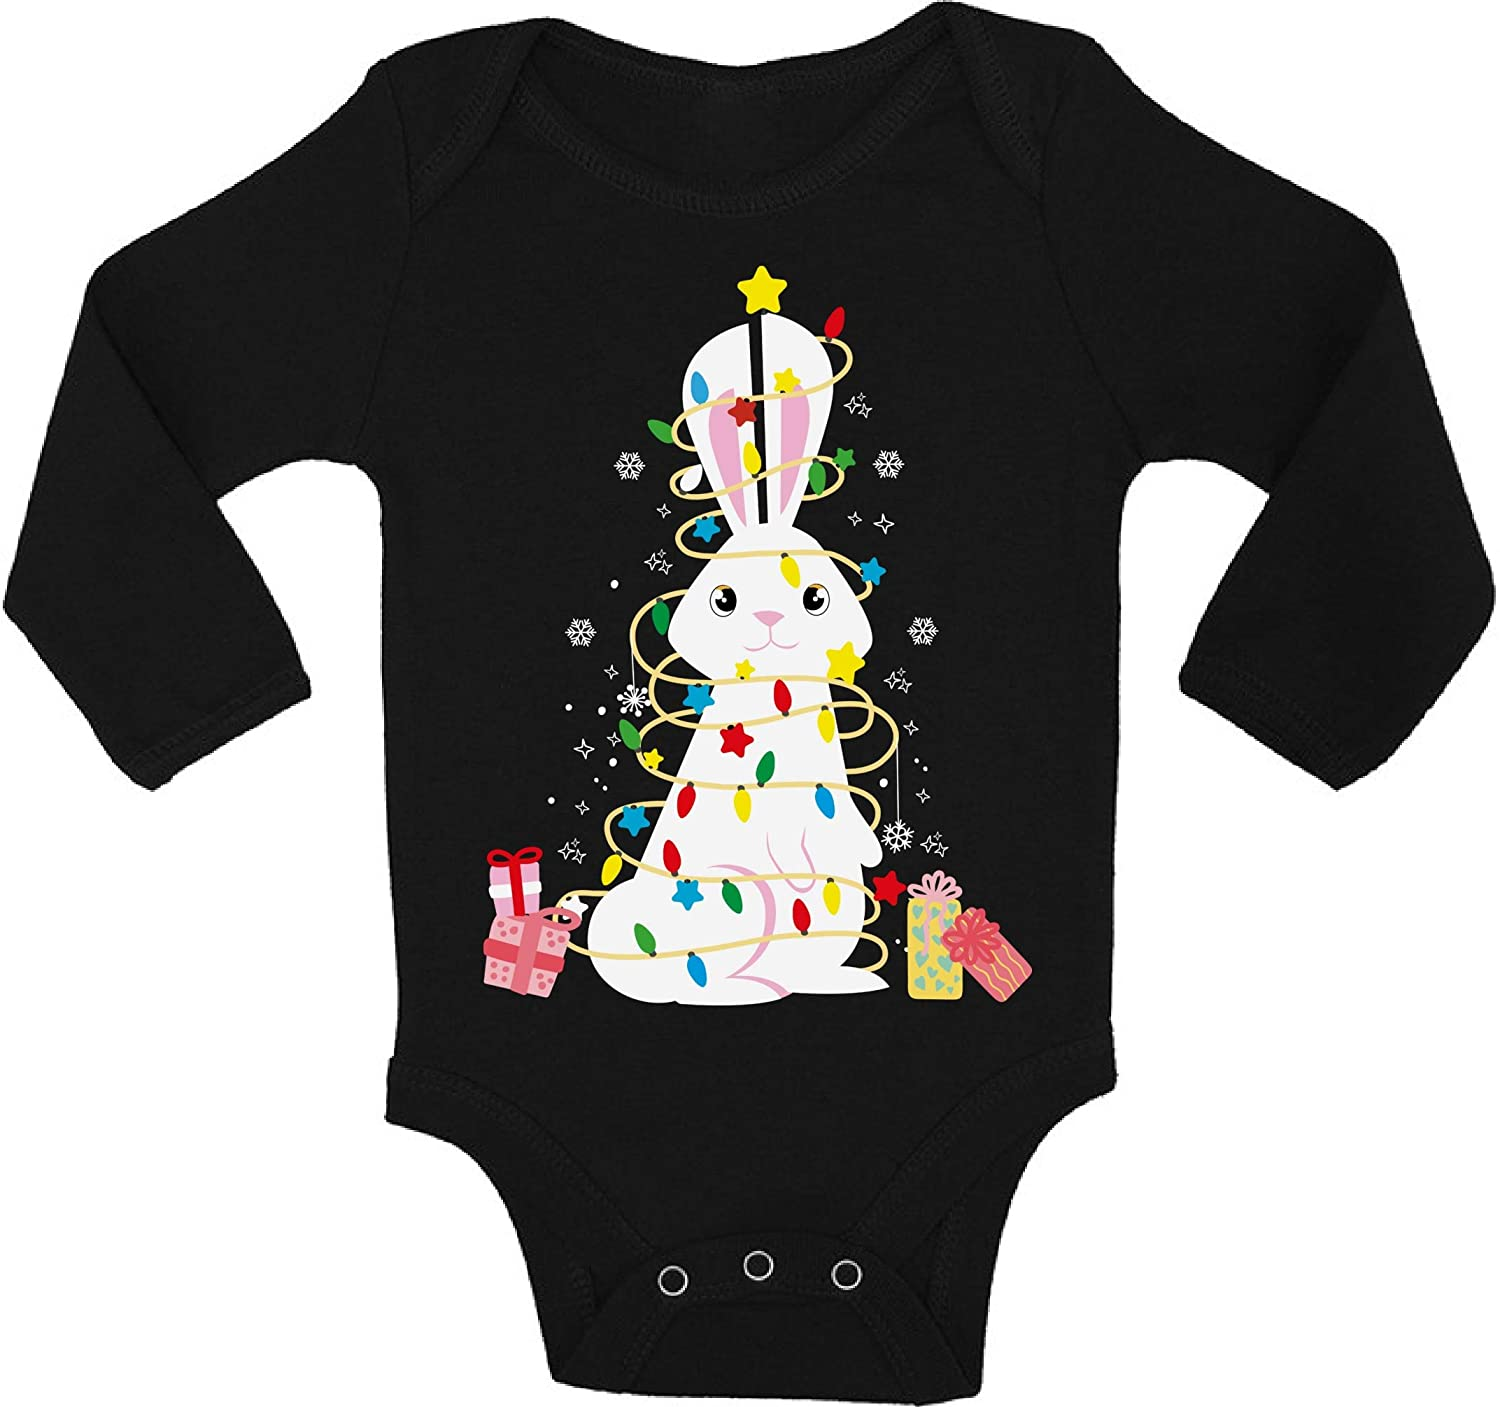 Awkward Styles Ugly Xmas Baby Outfit Bodysuit Rabbit Christmas Tree Baby Romper